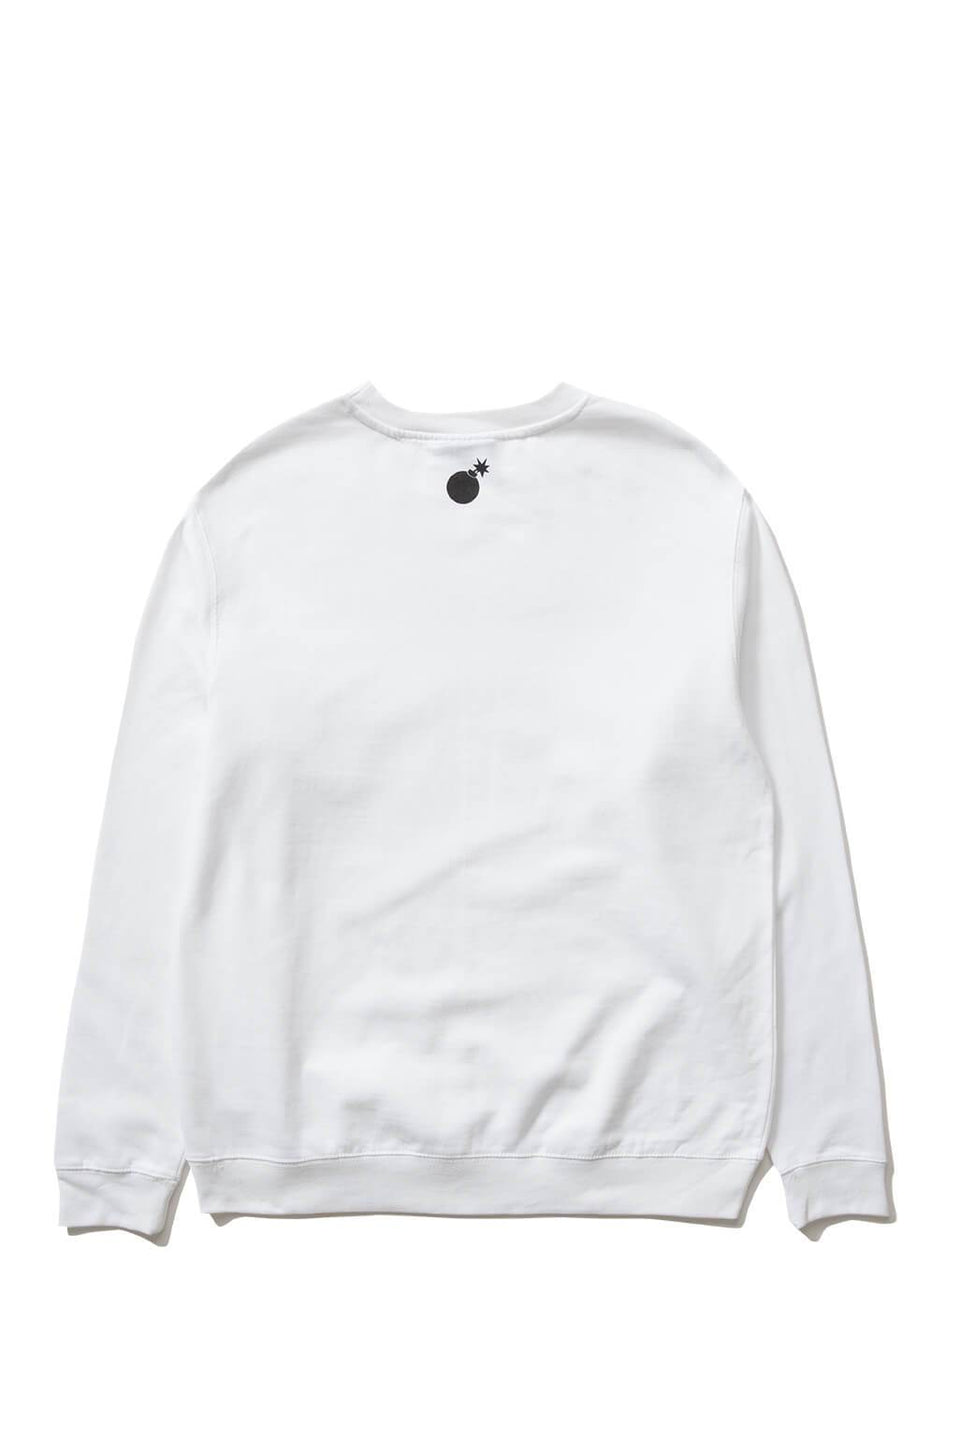 The Hundreds Forever Bar Crewneck Sweatshirt White Back